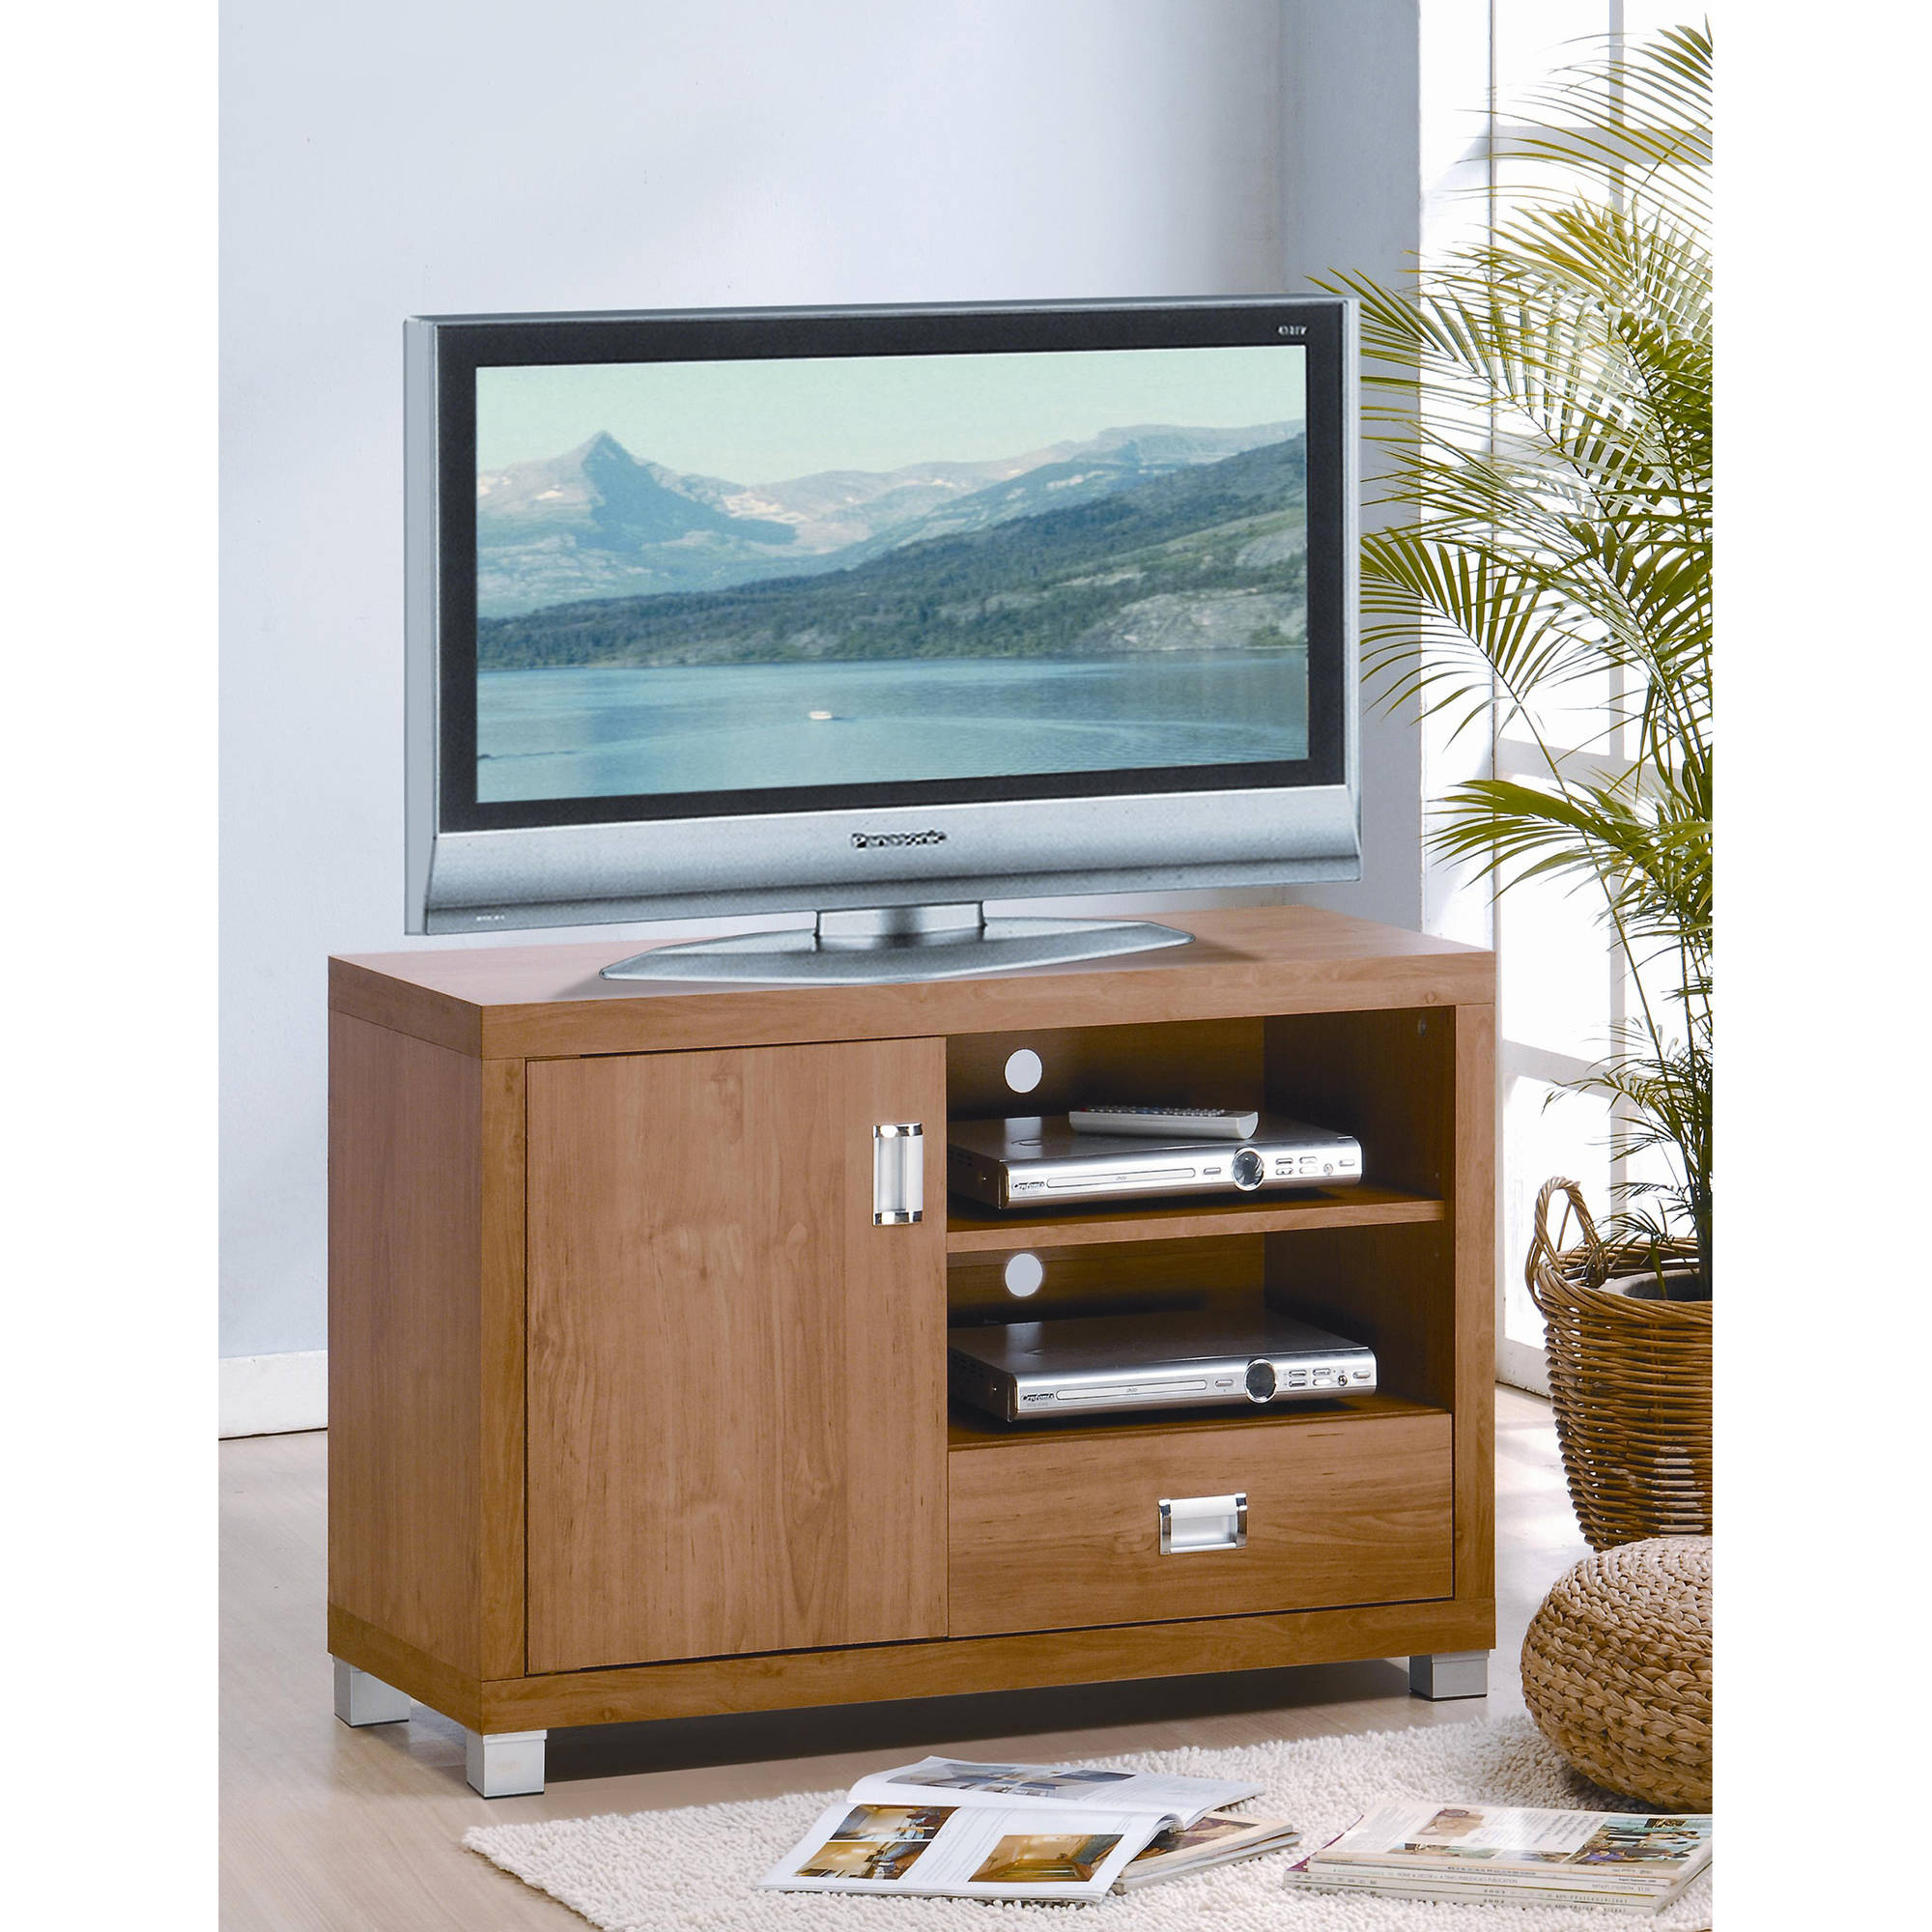 Techni Mobili TV Cabinet, Maple   Walmart.com